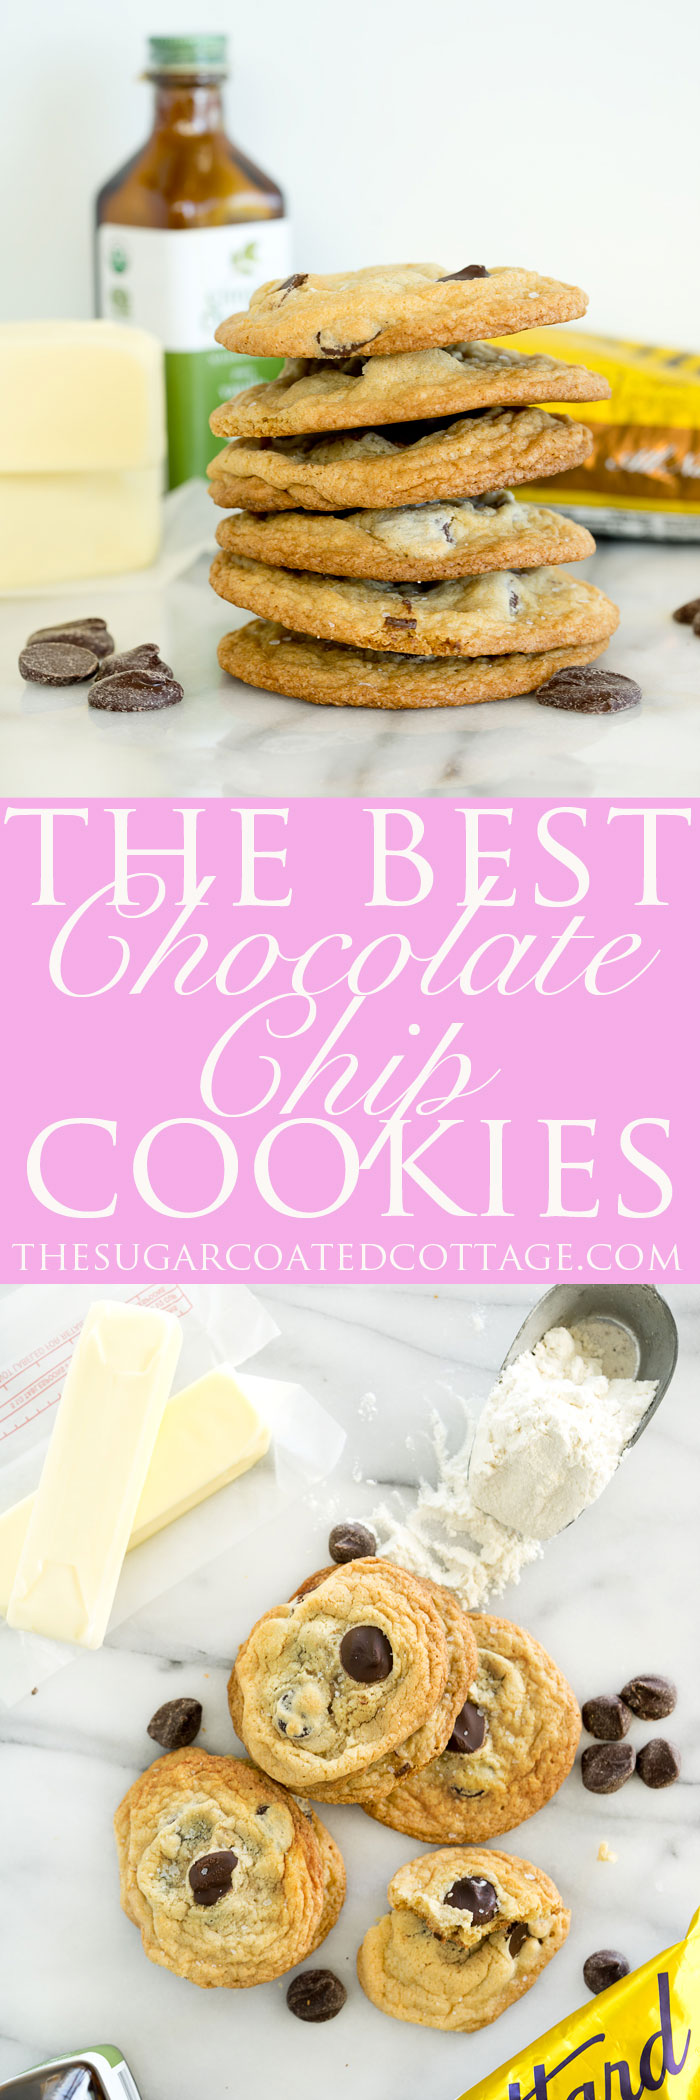 The Best Salted Chocolate Chip Cookie Recipe Ever. Crispy edges, chewy center, large baking chips and a sprinkling of sea salt make for one amazing cookie. | thesugarcoatedcottage.com